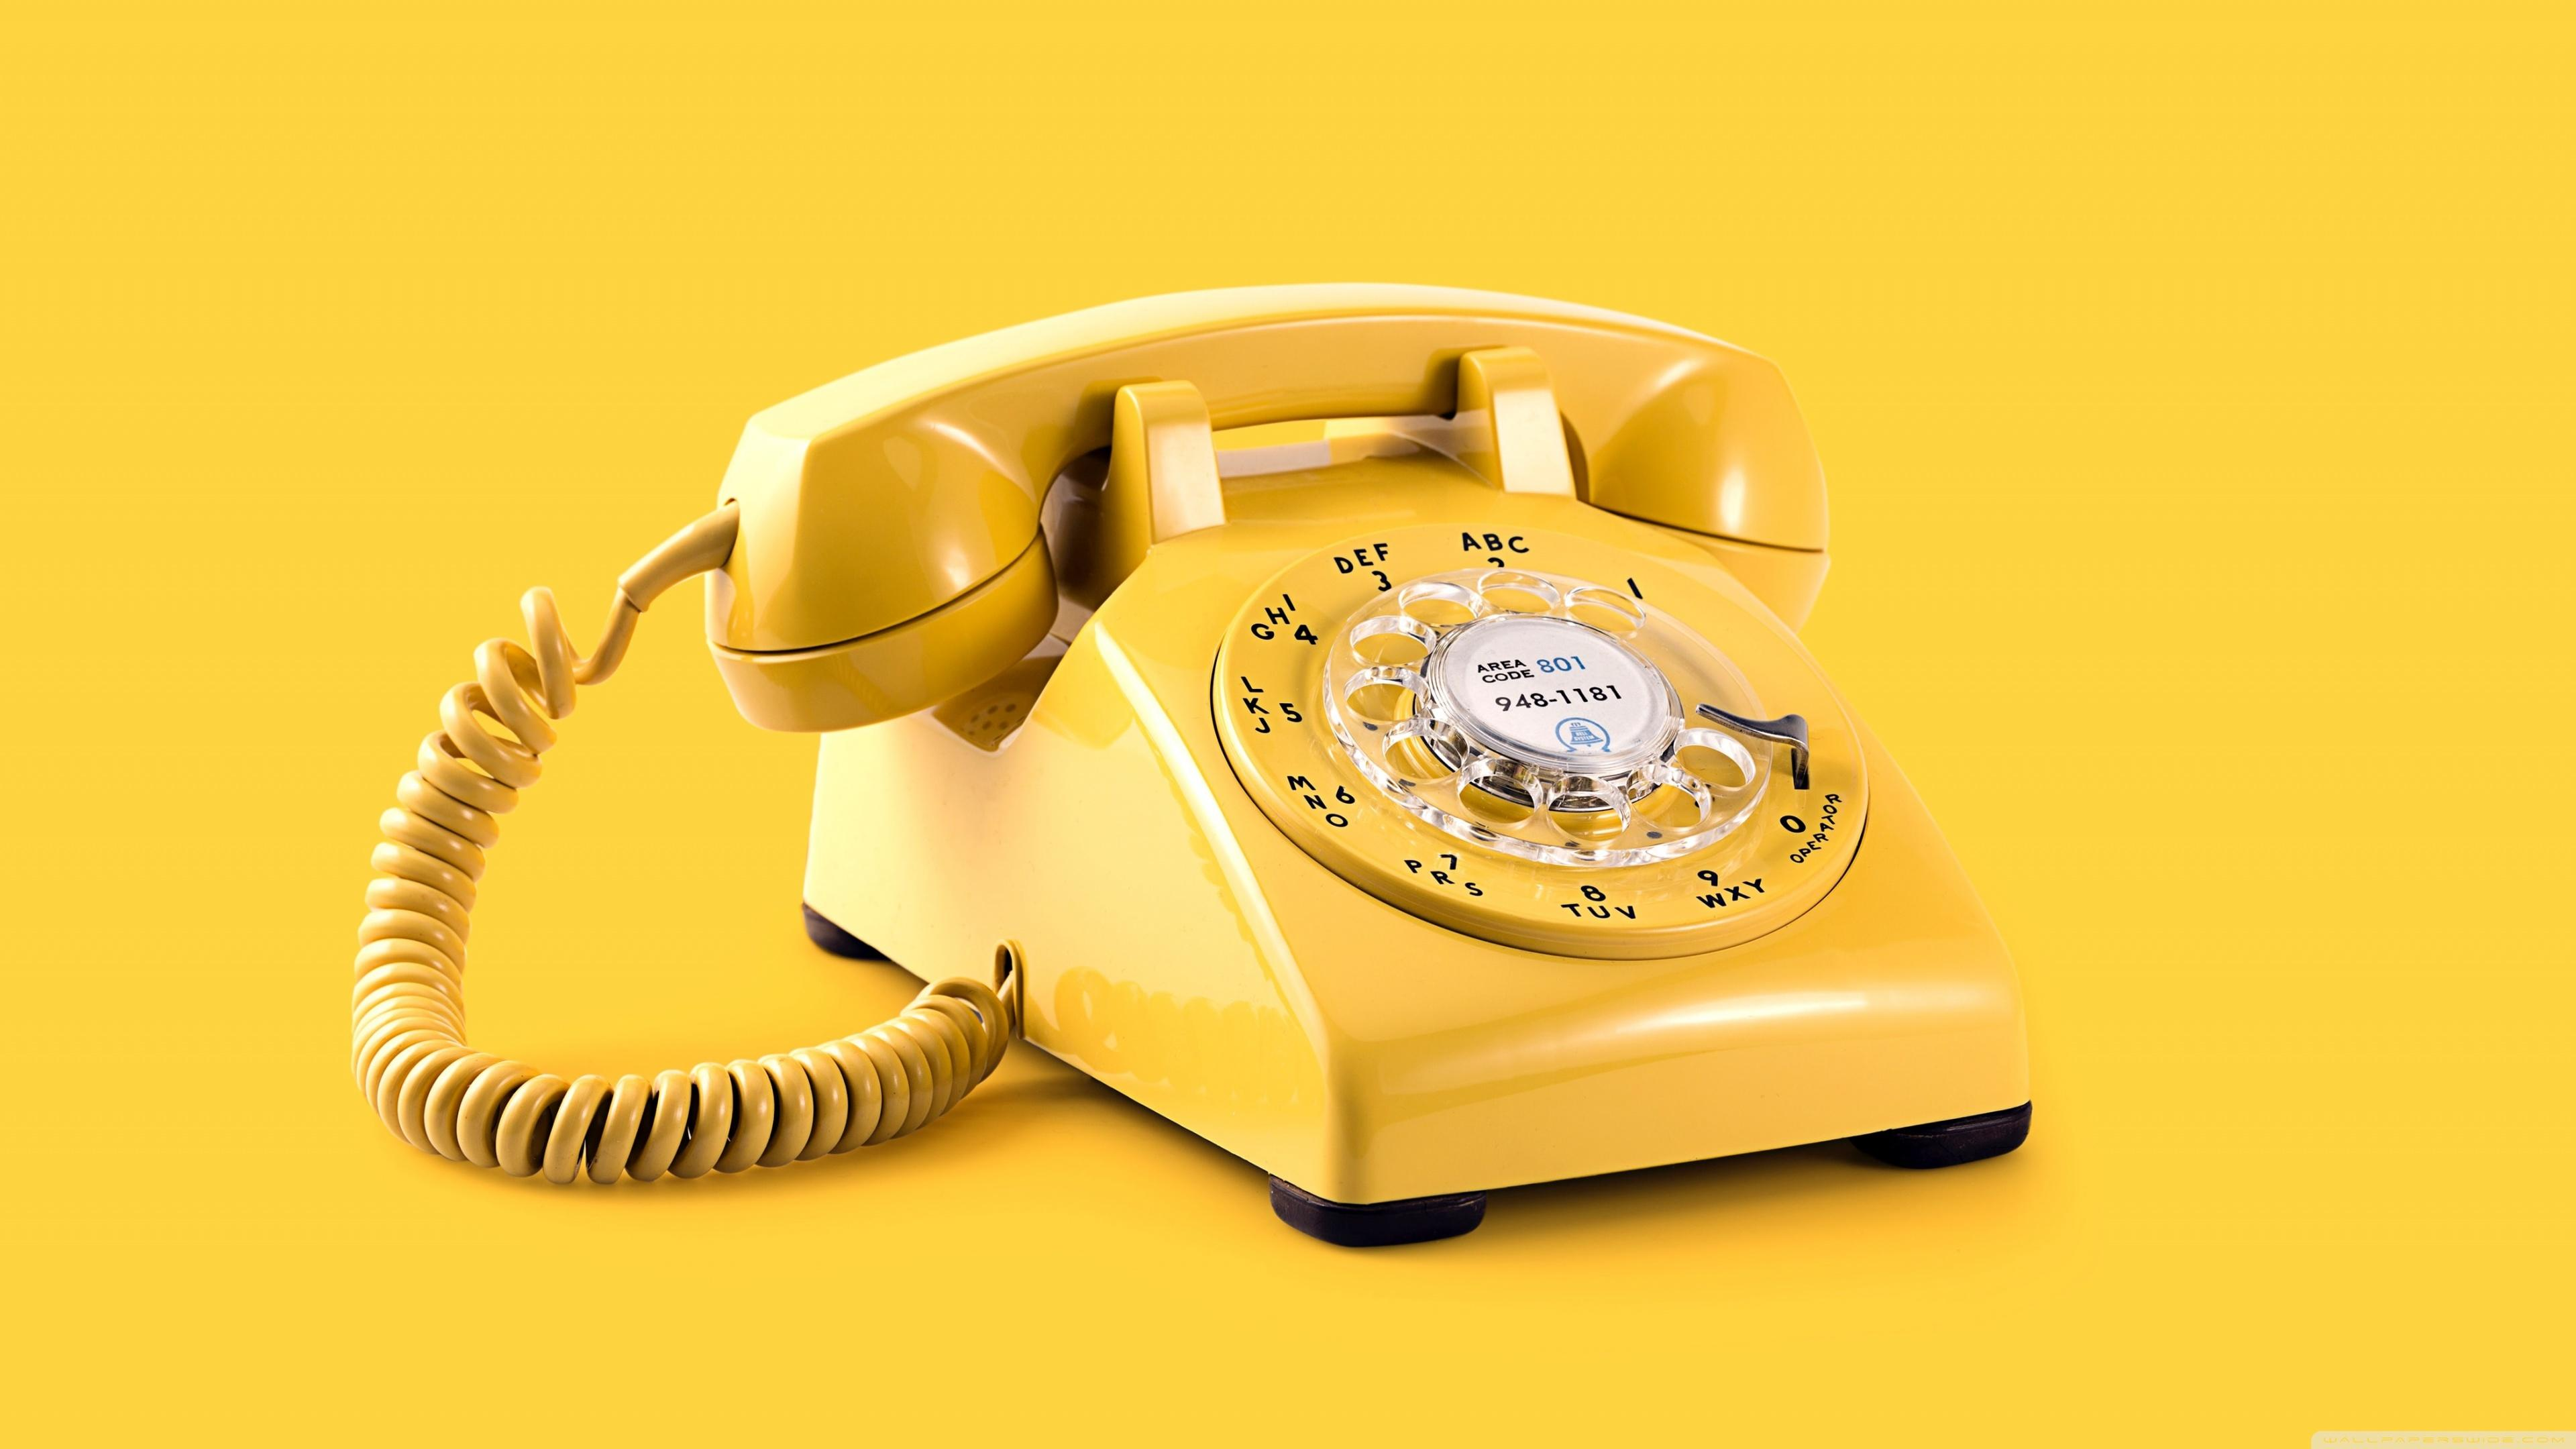 Retro Telephone Aesthetic Ultra HD Desktop Backgrounds Wallpapers